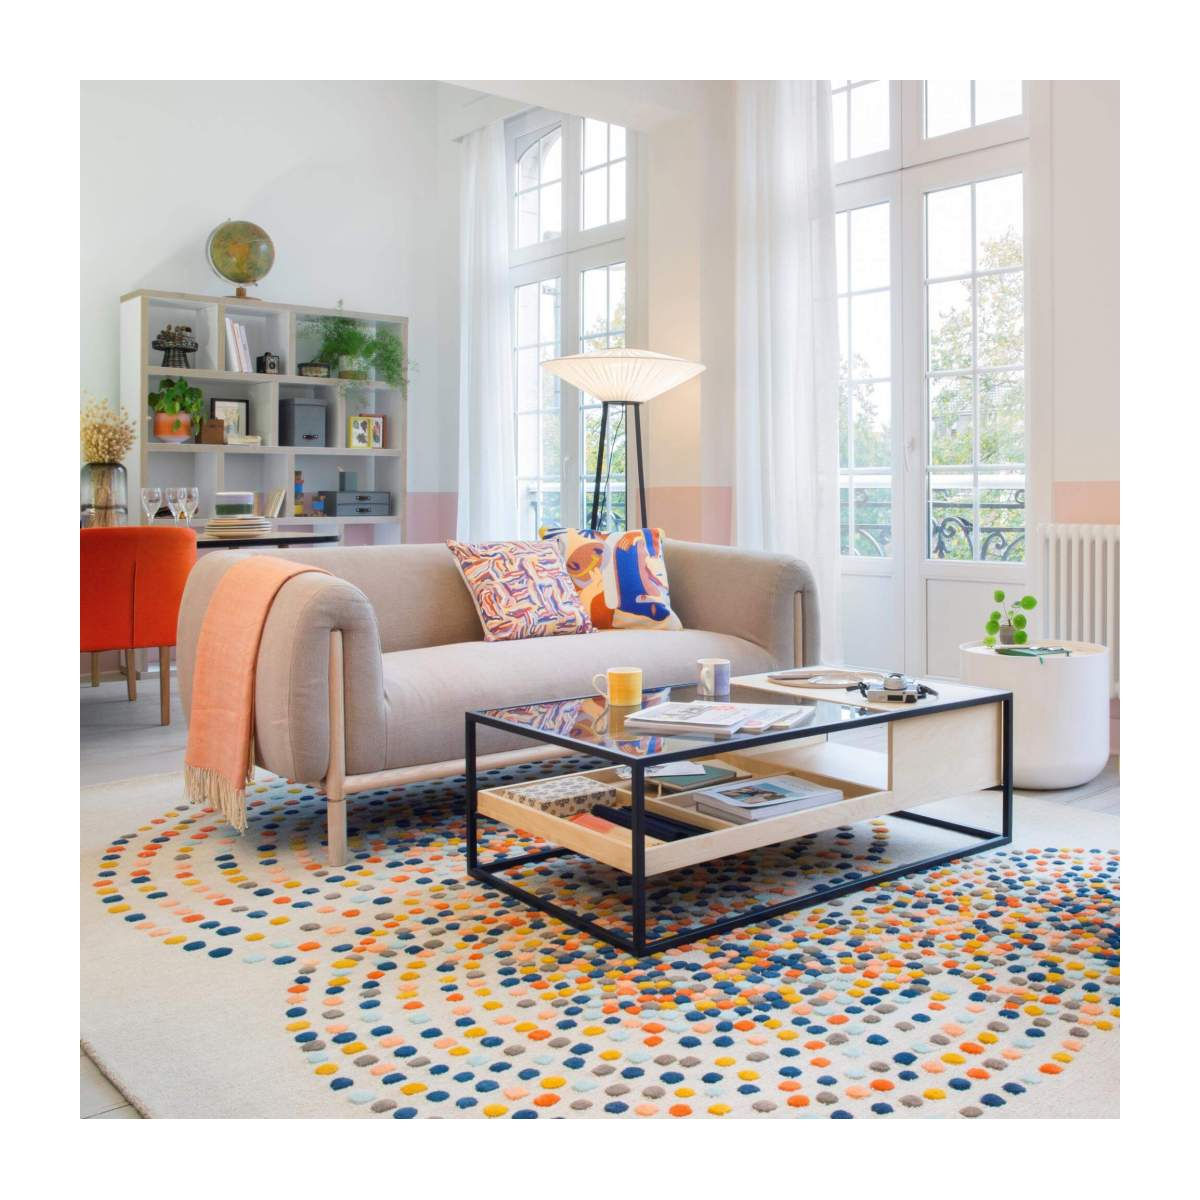 Hand tufted carpet made of wool 250x350cm mulitcolor n°5